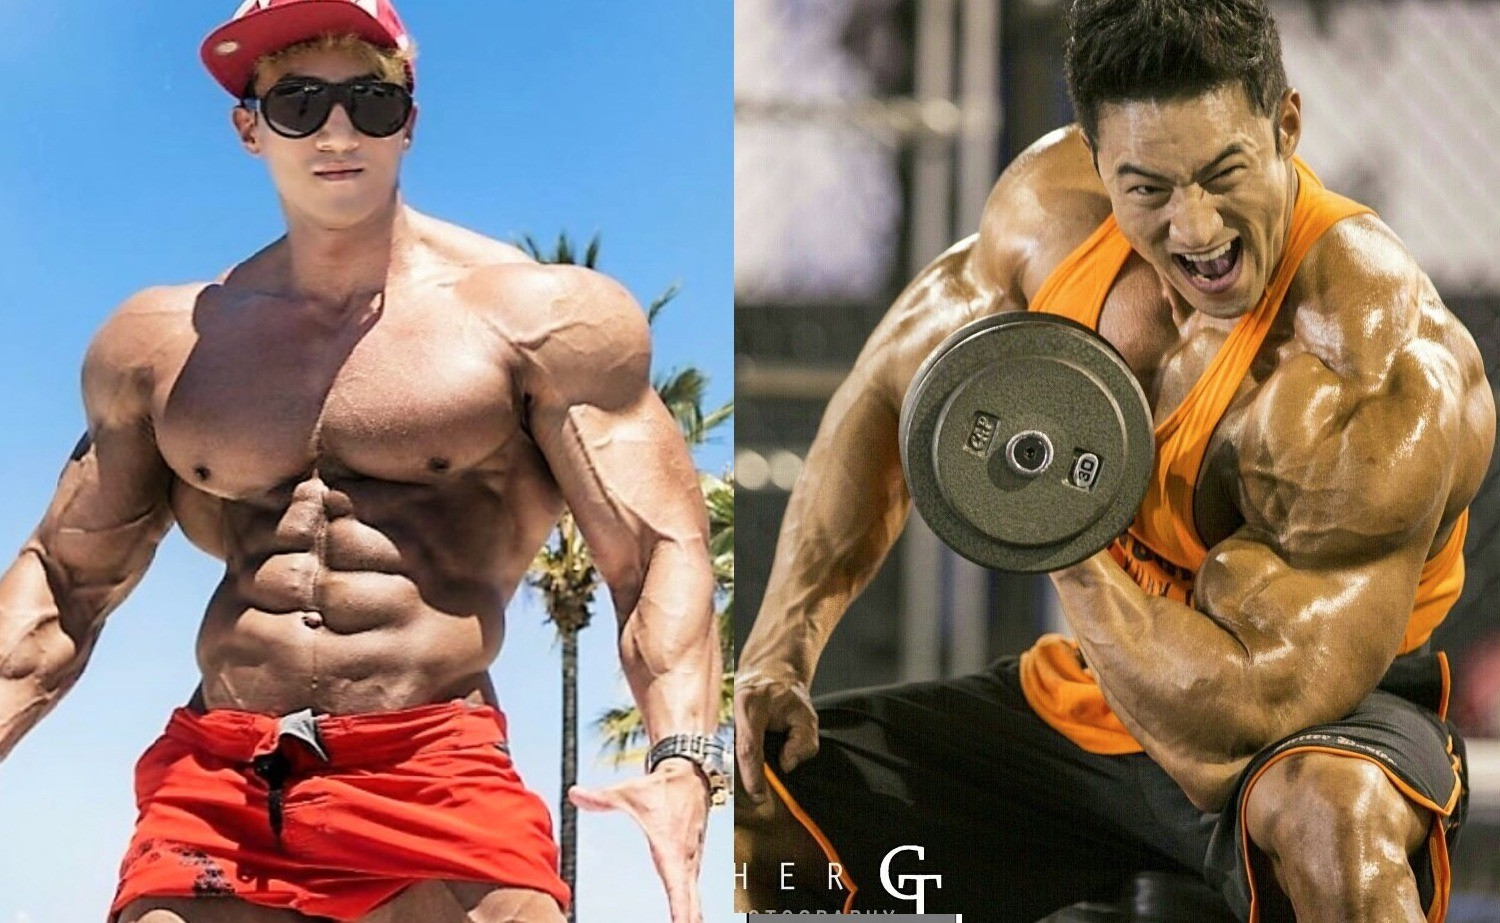 Looking for the Best Bodybuilding Coupons? Get Up To 60% DISCOUNT. Fitness deals, bodybuilding coupons, cheap supplements, gym accessories, apparels & more!